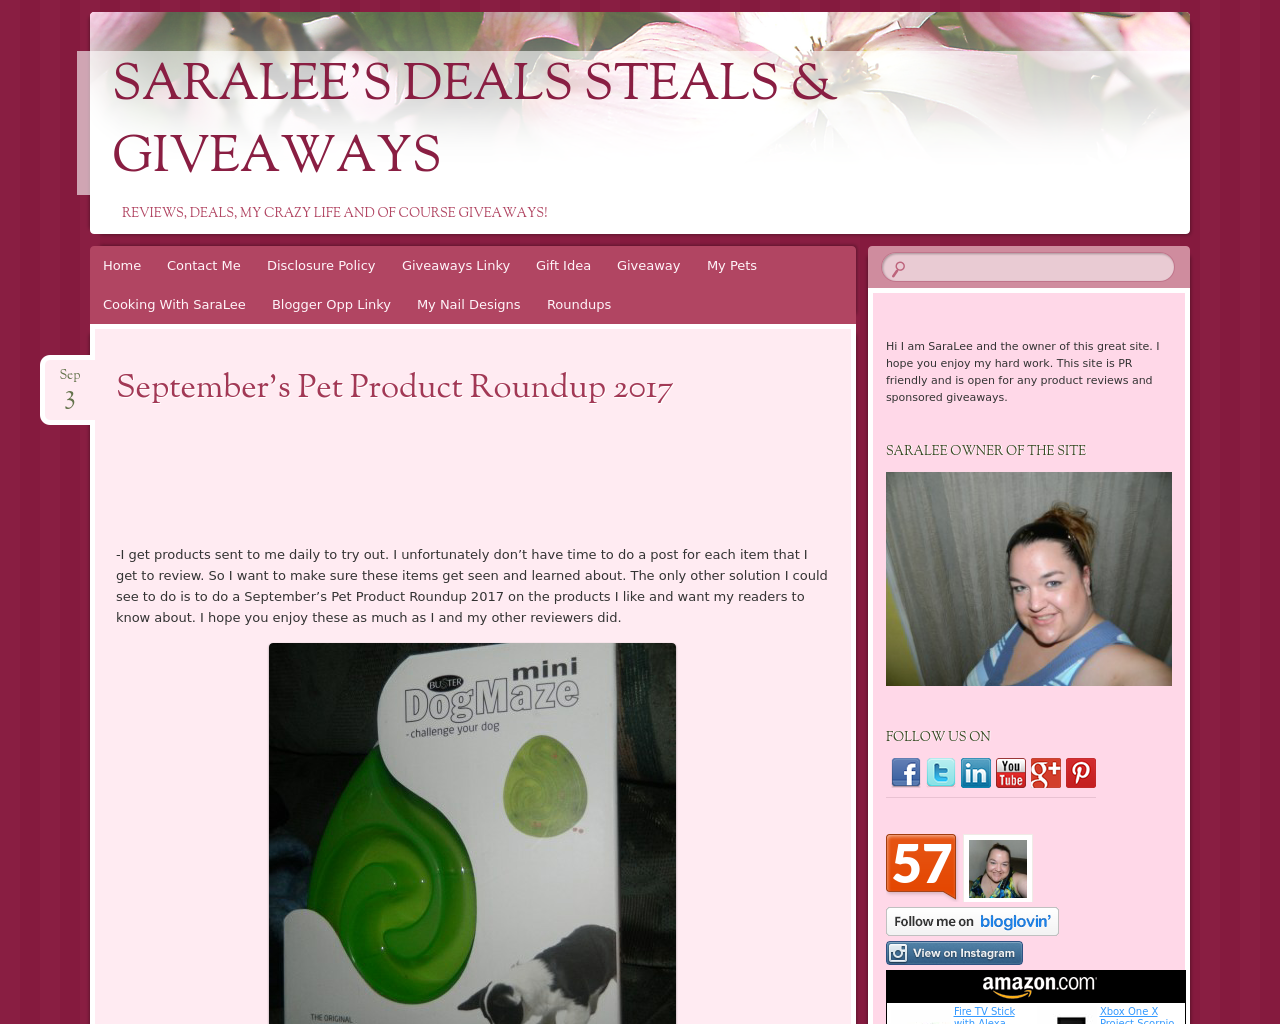 Saralee's-Deals-Steals-And-Giveaways-Advertising-Reviews-Pricing